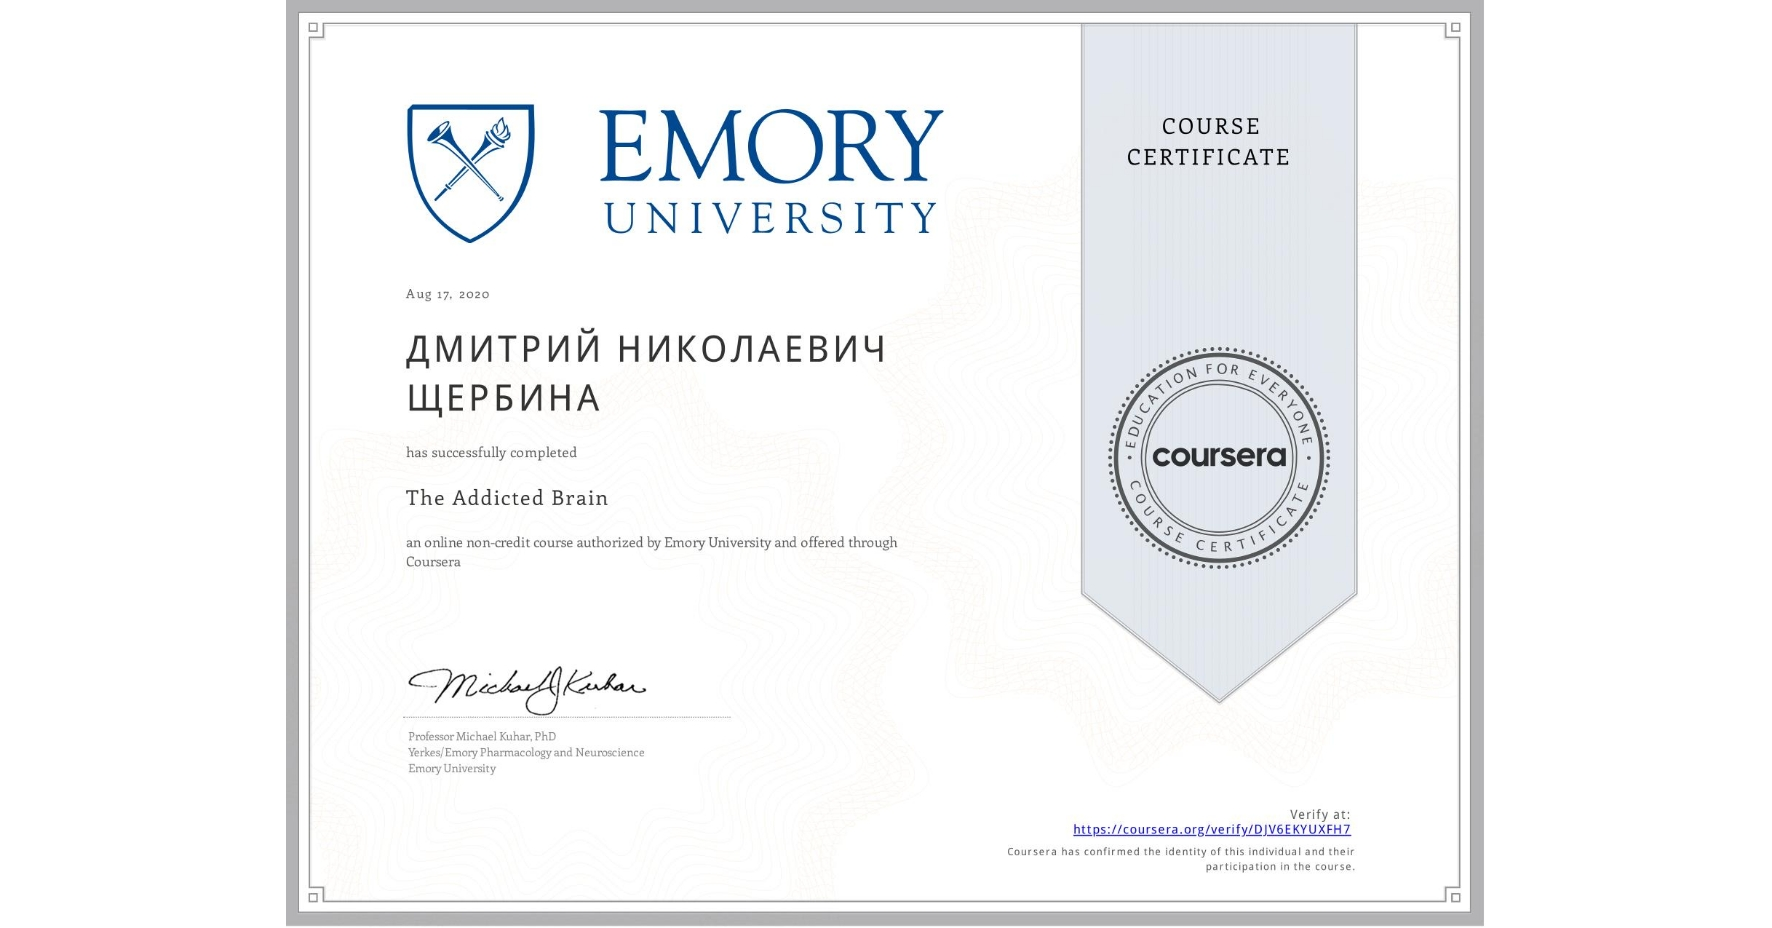 View certificate for ДМИТРИЙ НИКОЛАЕВИЧ ЩЕРБИНА, The Addicted Brain, an online non-credit course authorized by Emory University and offered through Coursera